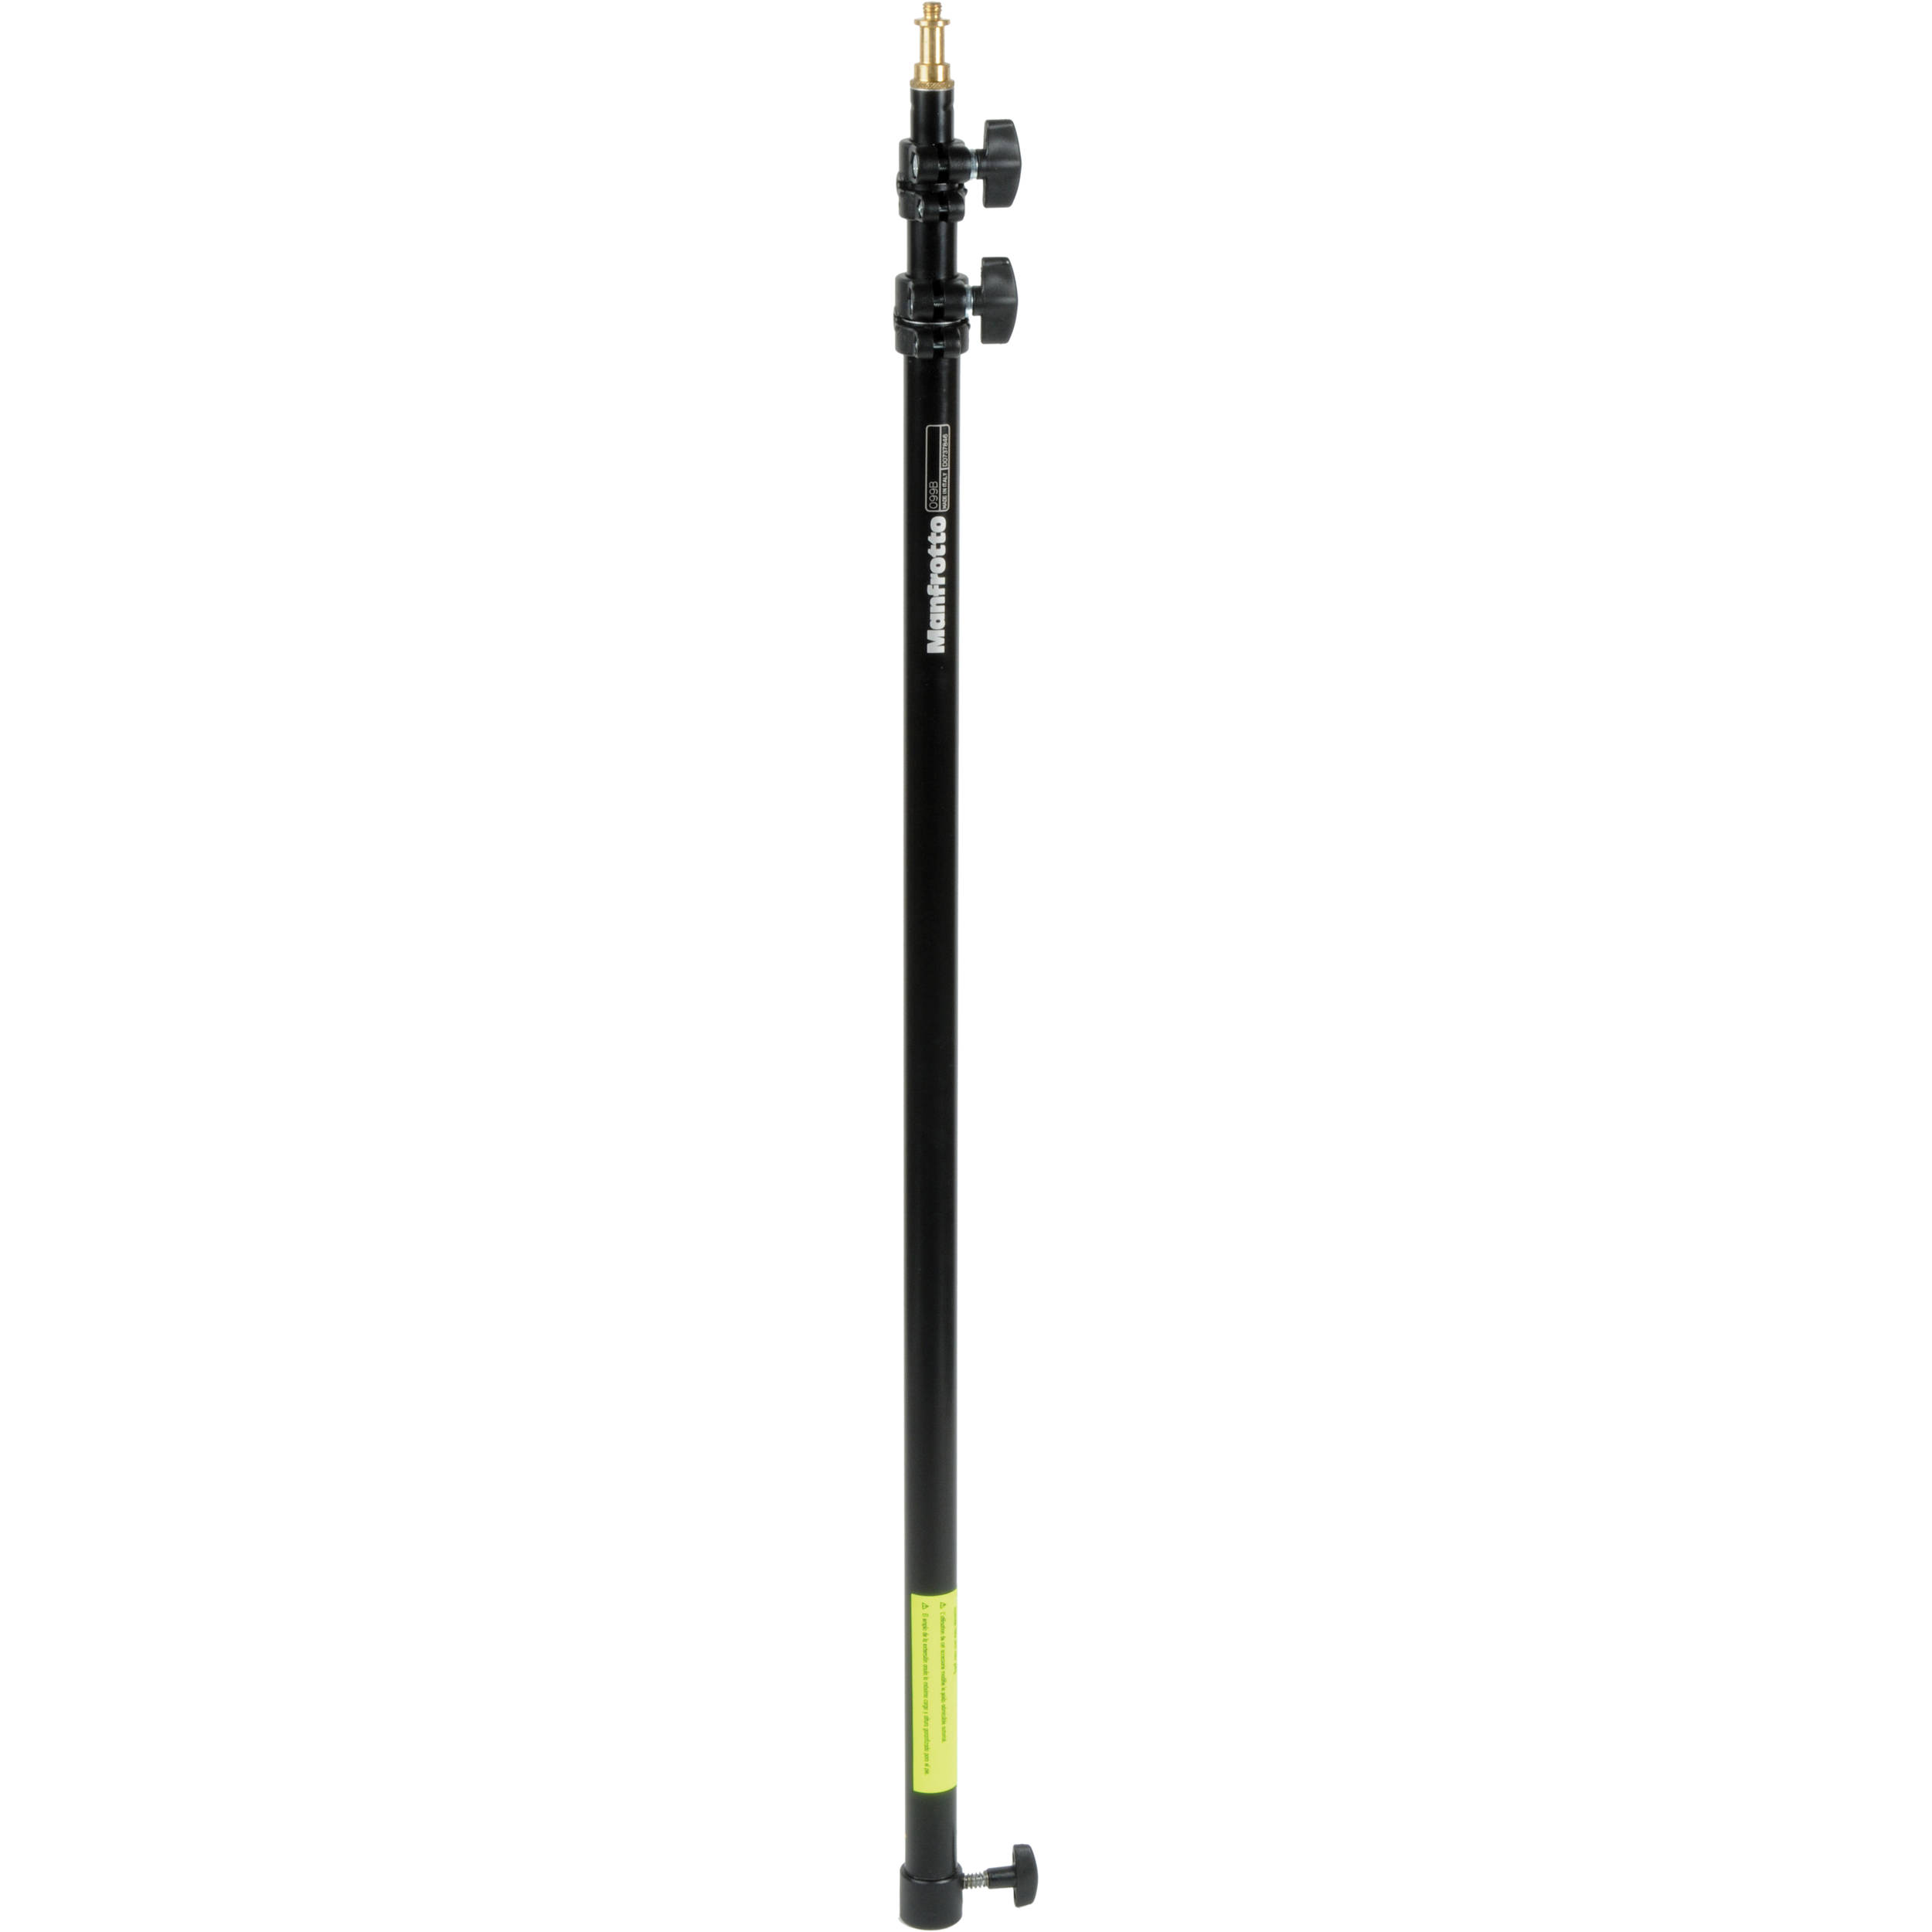 """Light Stand Pole: Manfrotto 3-Section Extension Pole (35- 92"""") (Black) 099B"""